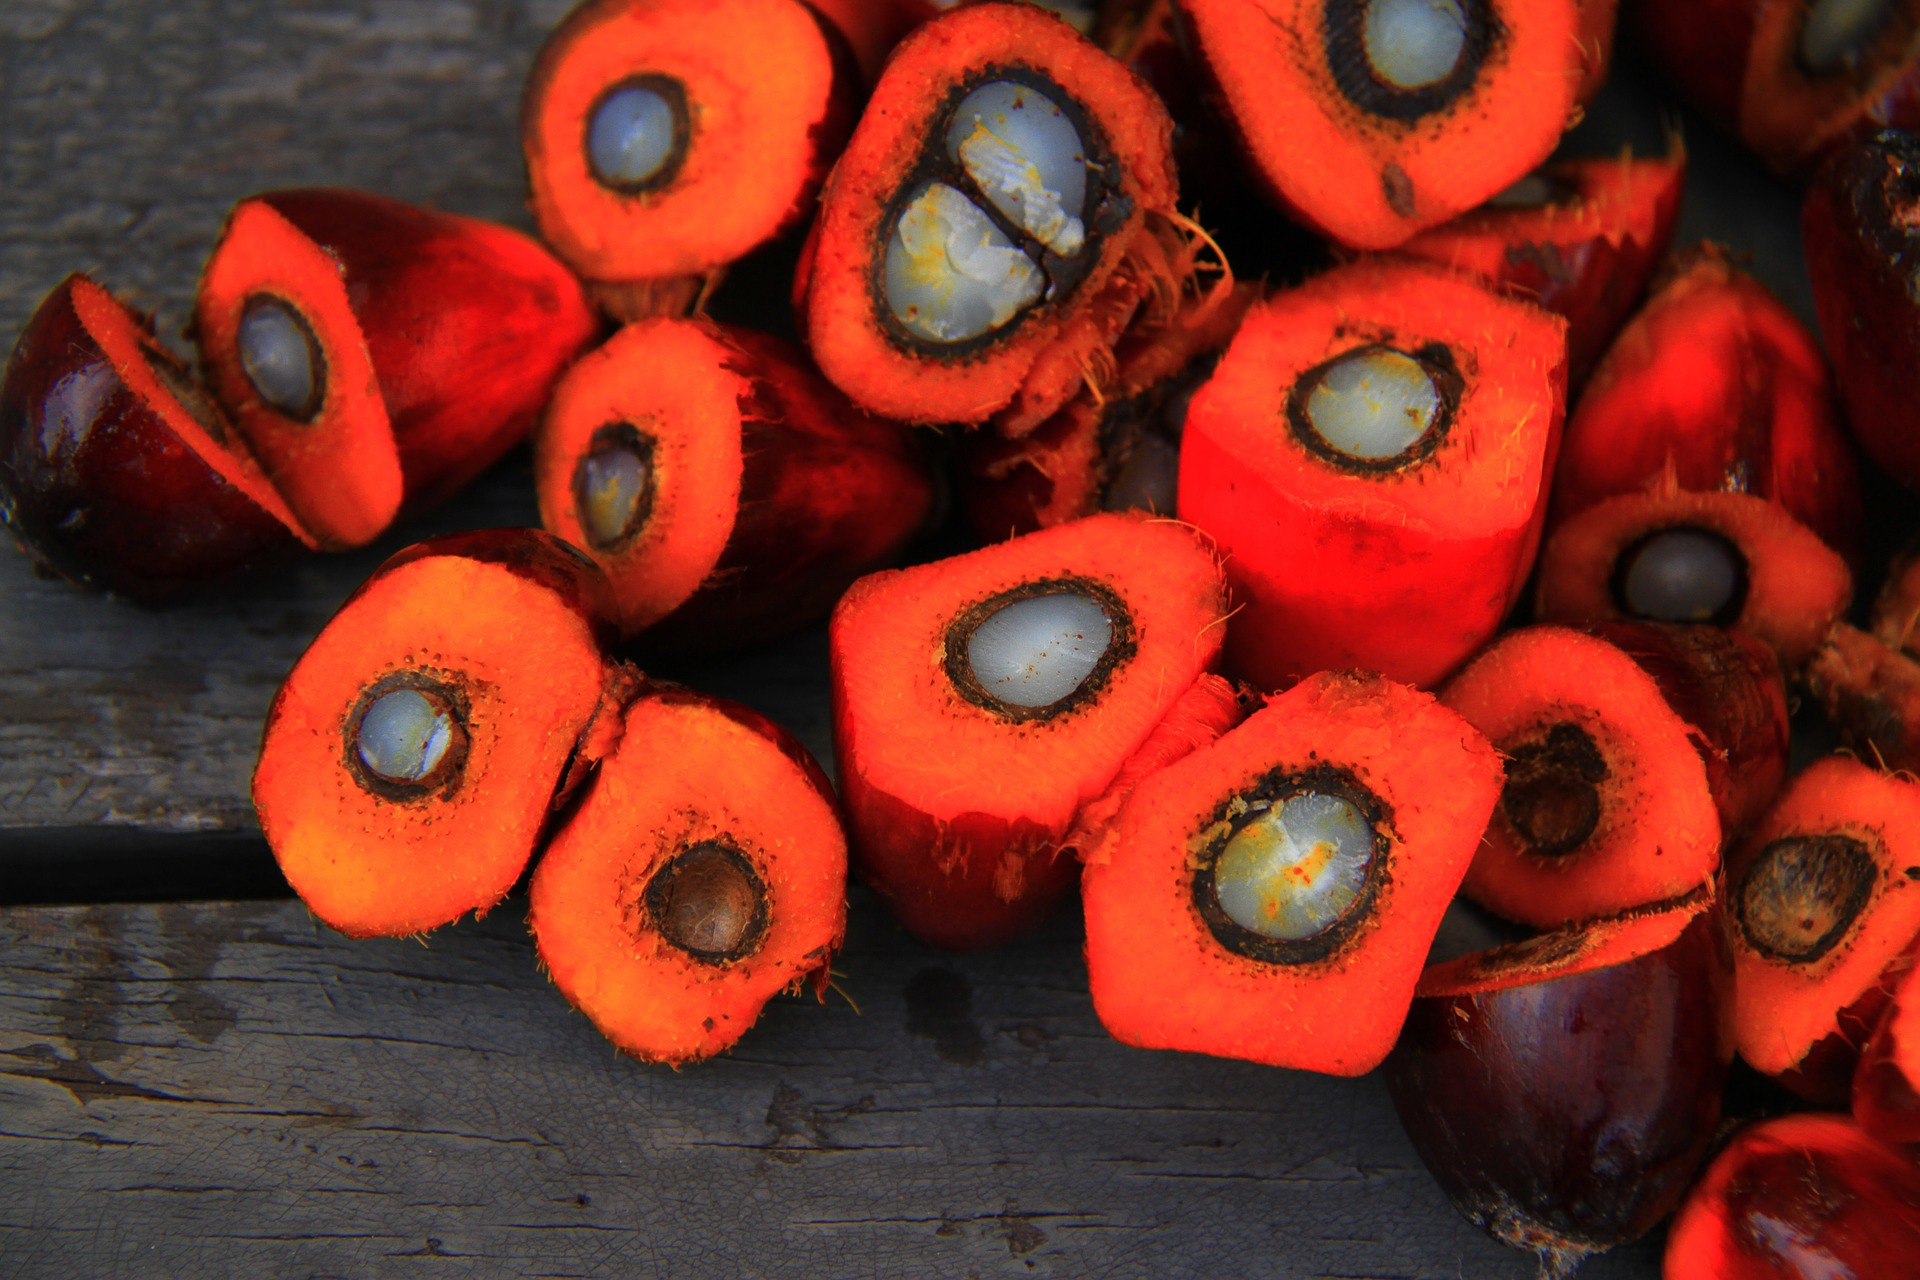 Palm Fruit Used for Dendê Oil Common in West Africa and Brazil